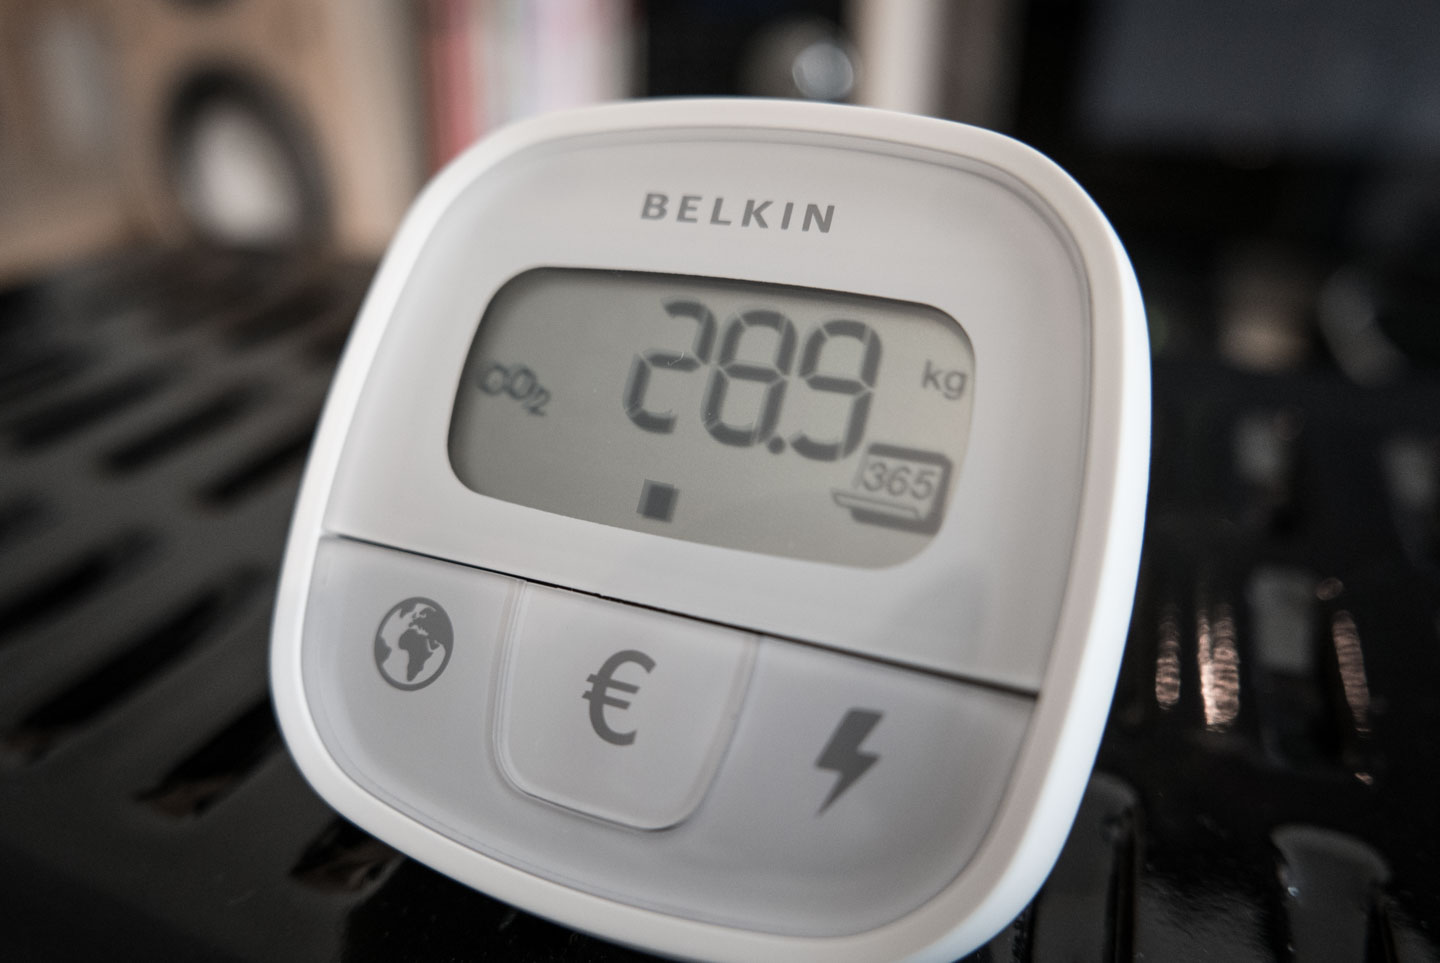 Save power by making your energy consumption visible with our free energy monitor